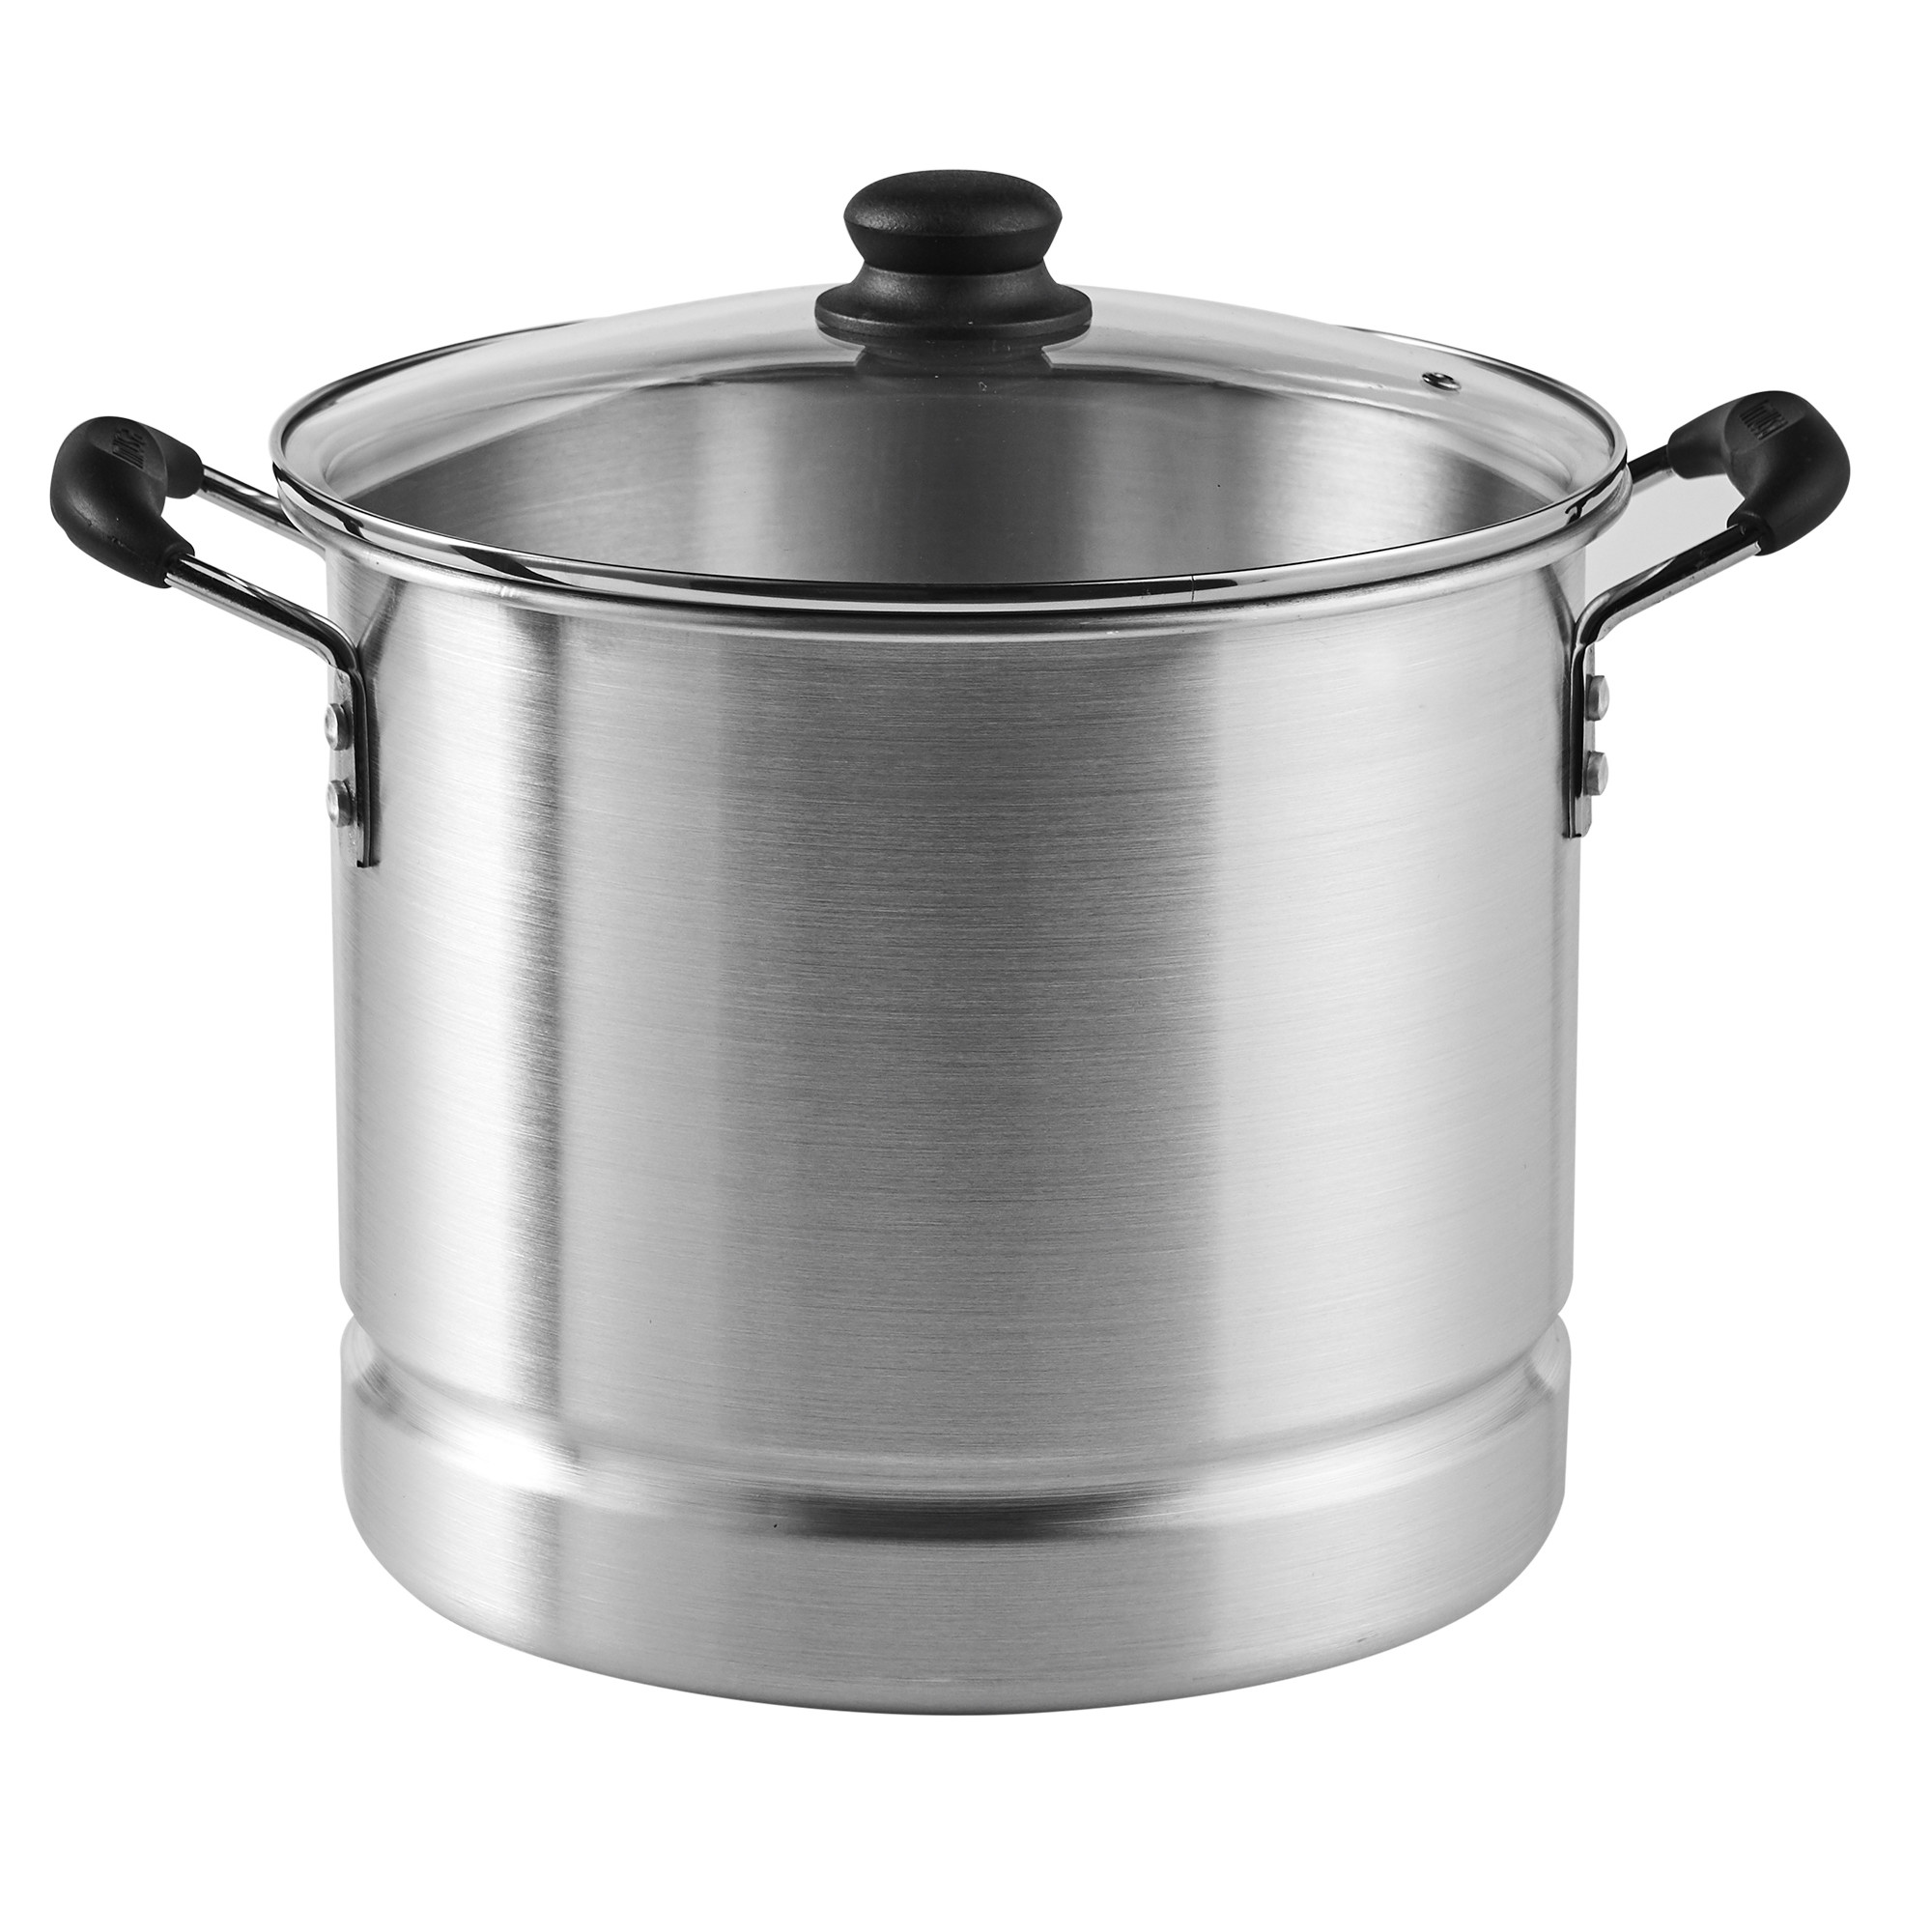 imusa Aluminum 16 Quart Steamer with Glass Lid and Rack, 2 Piece